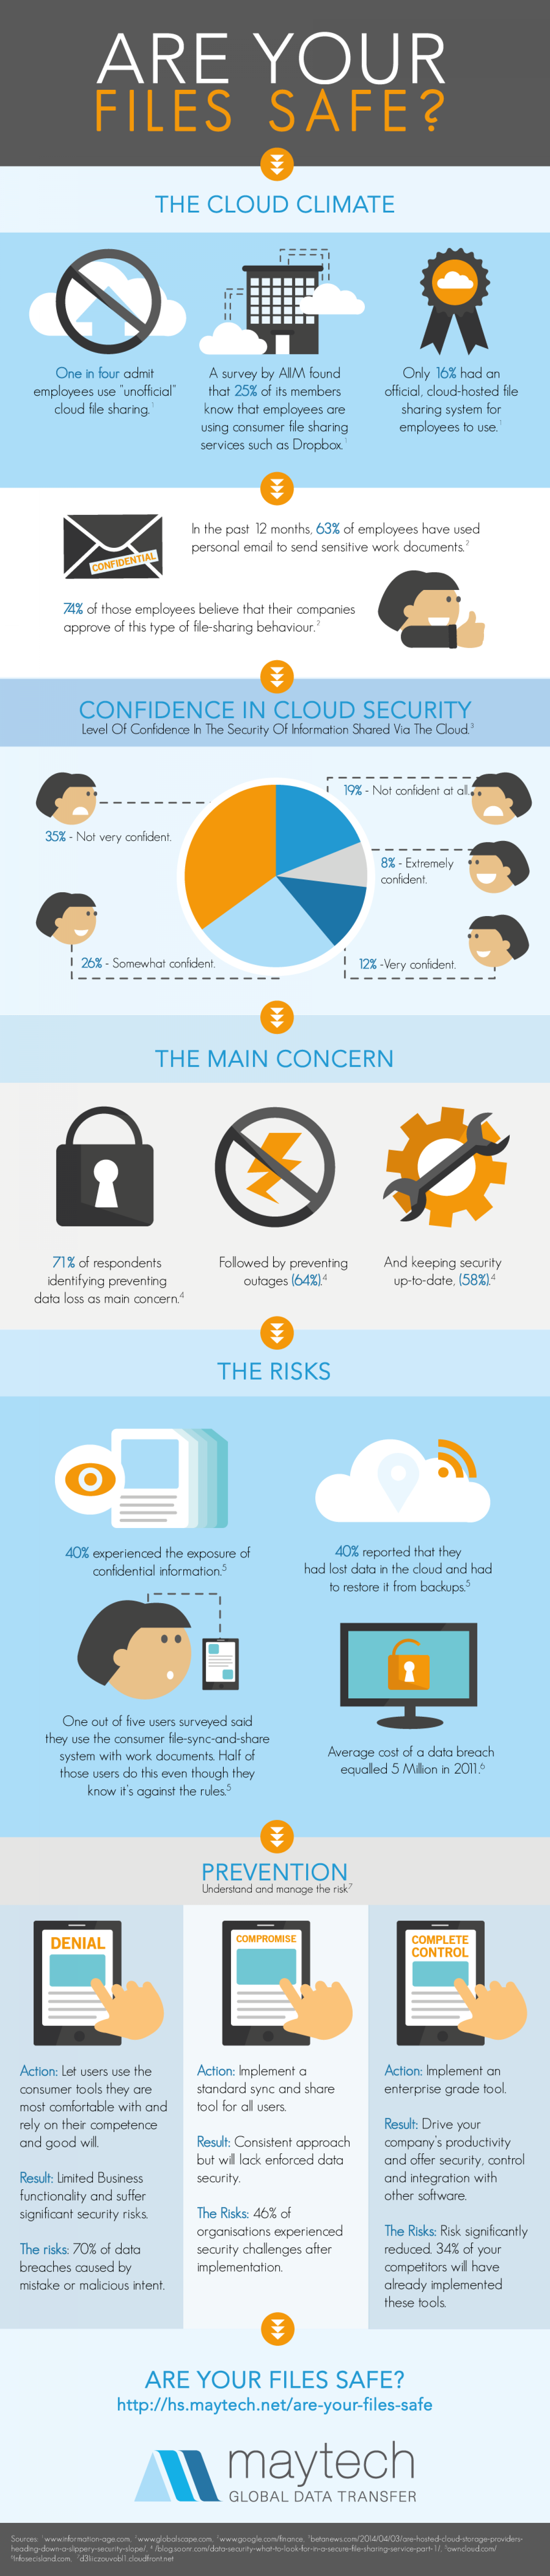 Are Your Files Safe? Infographic